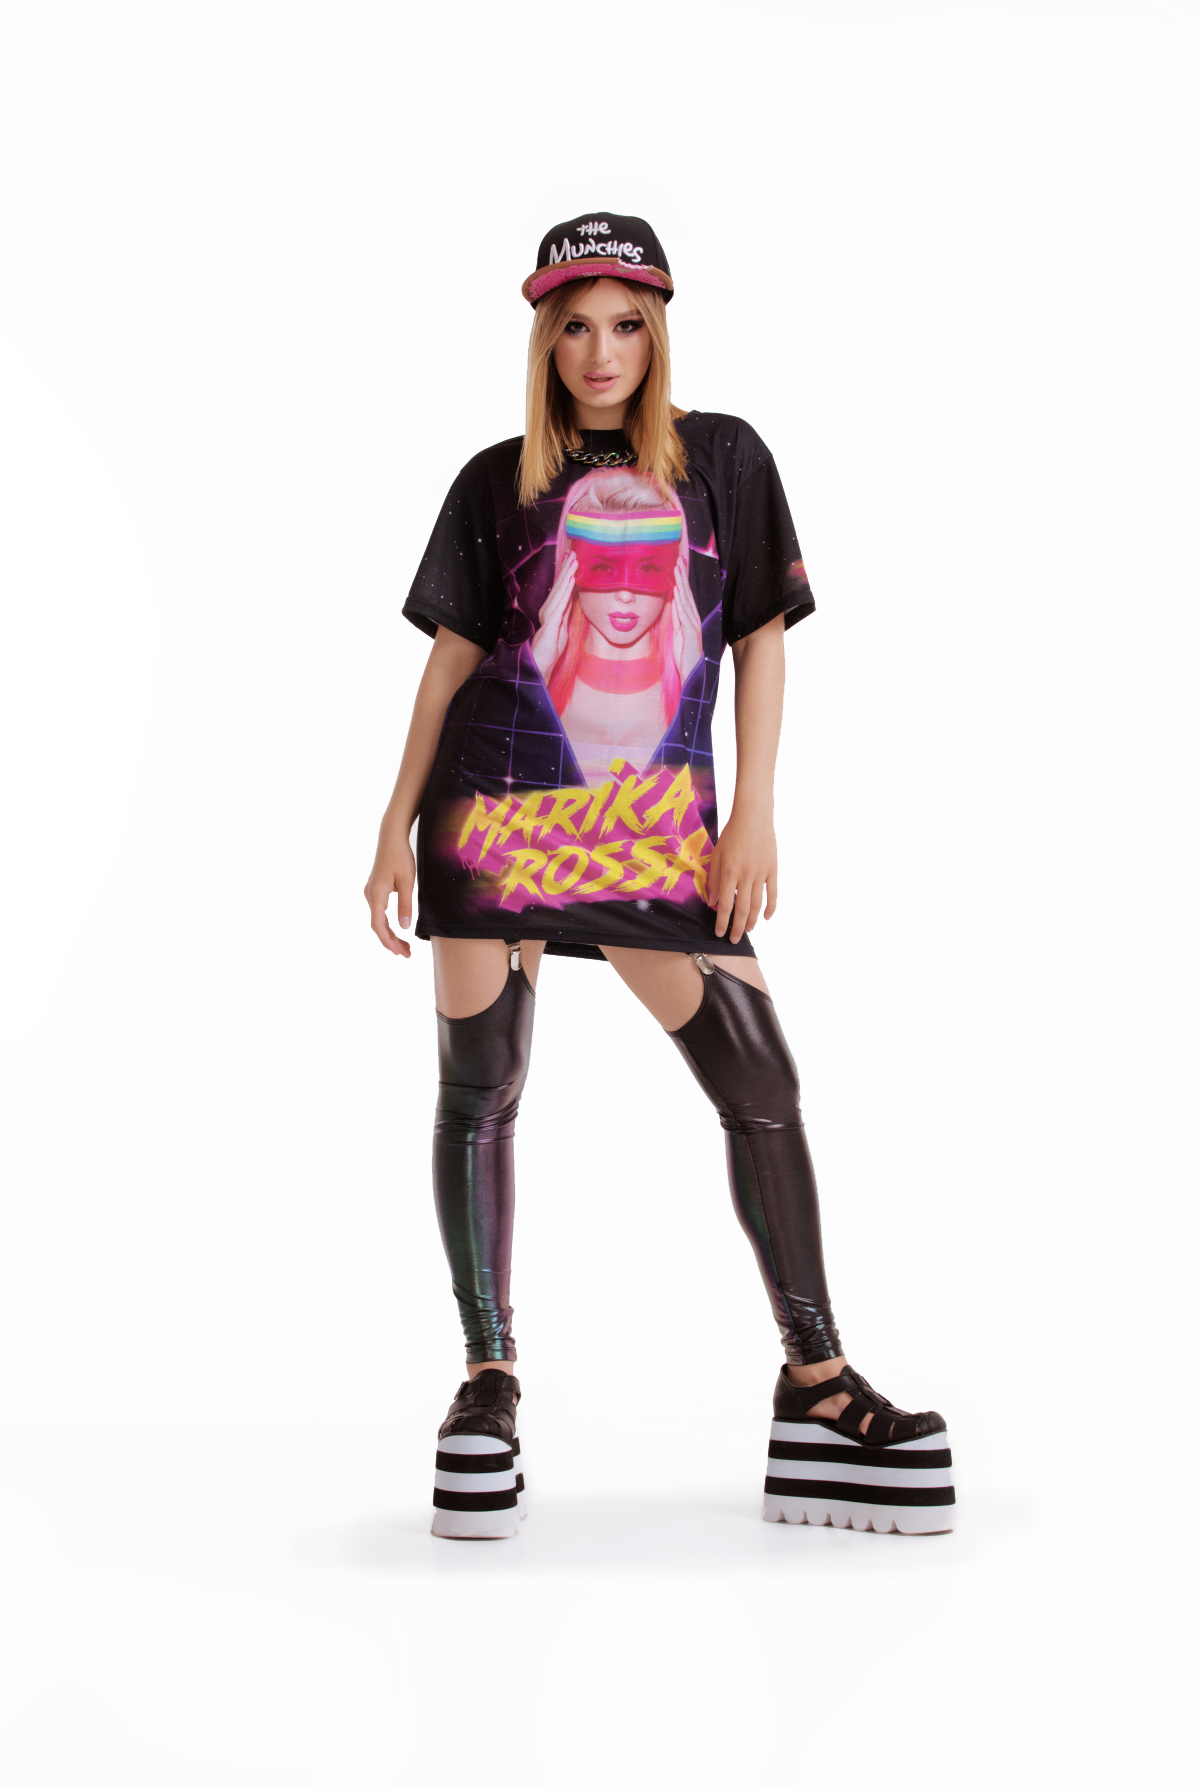 Oversized T-shirt  Marika Rossa + Festival Backpacks